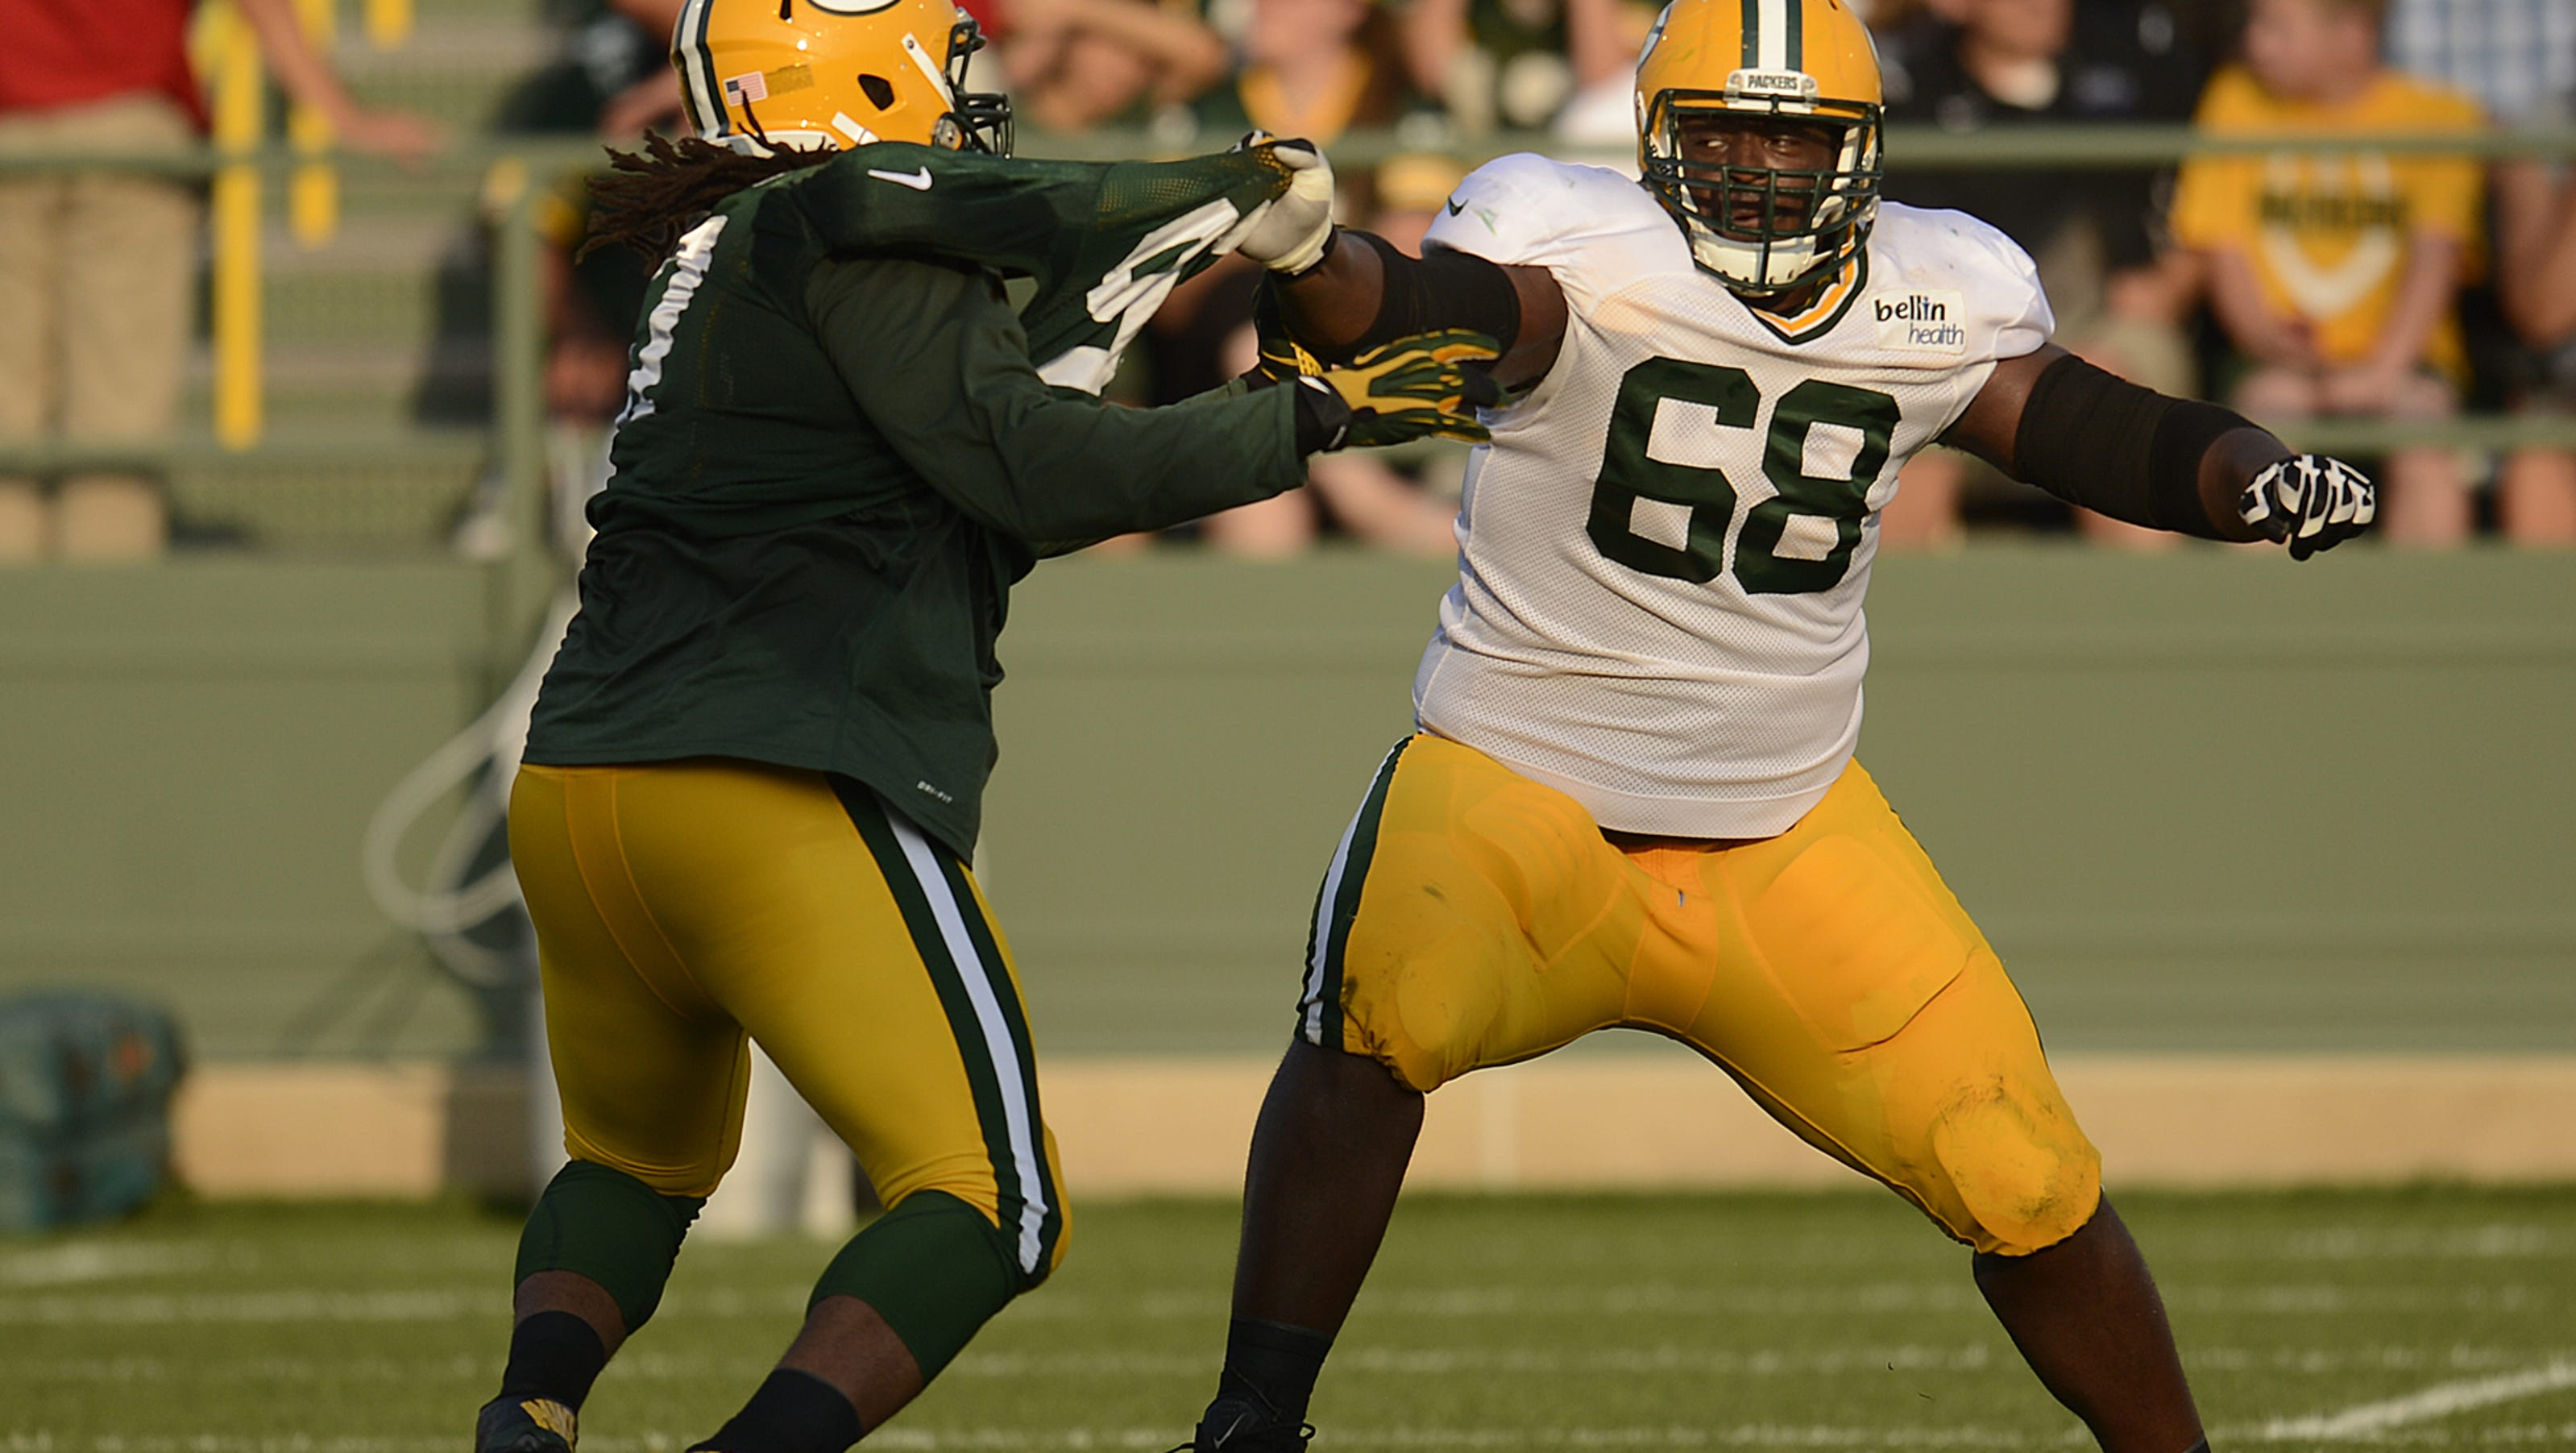 green bay packers swot Green bay packers 2015 salary cap, contracts, cap figures, salaries, free agents, and transactions, including bonus breakdowns, team payrolls and more.